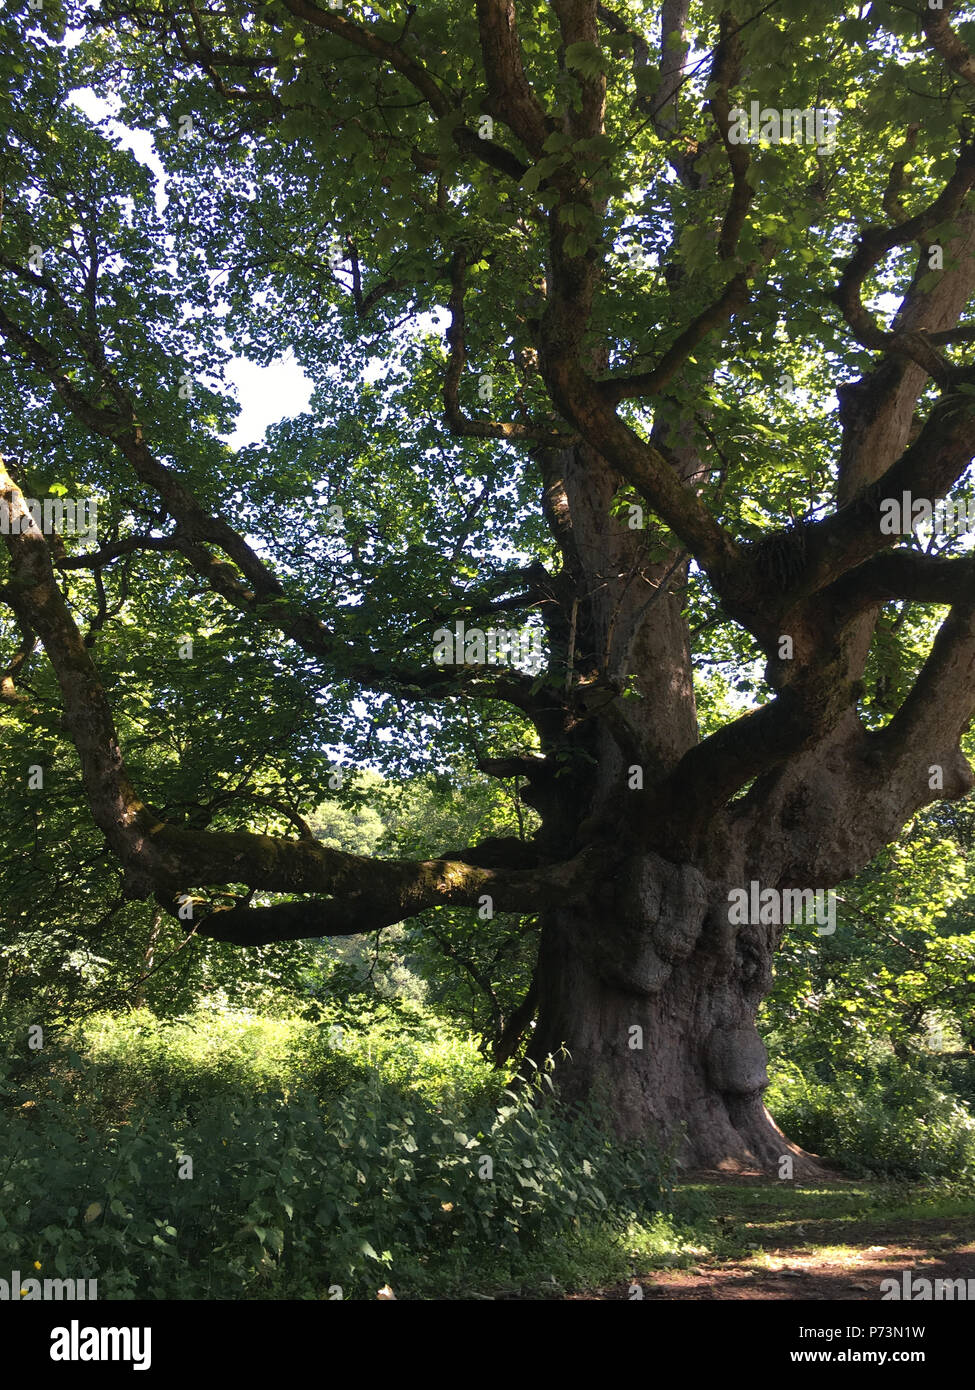 'Young Pretender' 300-year old Sycamore tree, in Birnam Wood, Dunkeld, Scotland, on 1 July 2018. - Stock Image